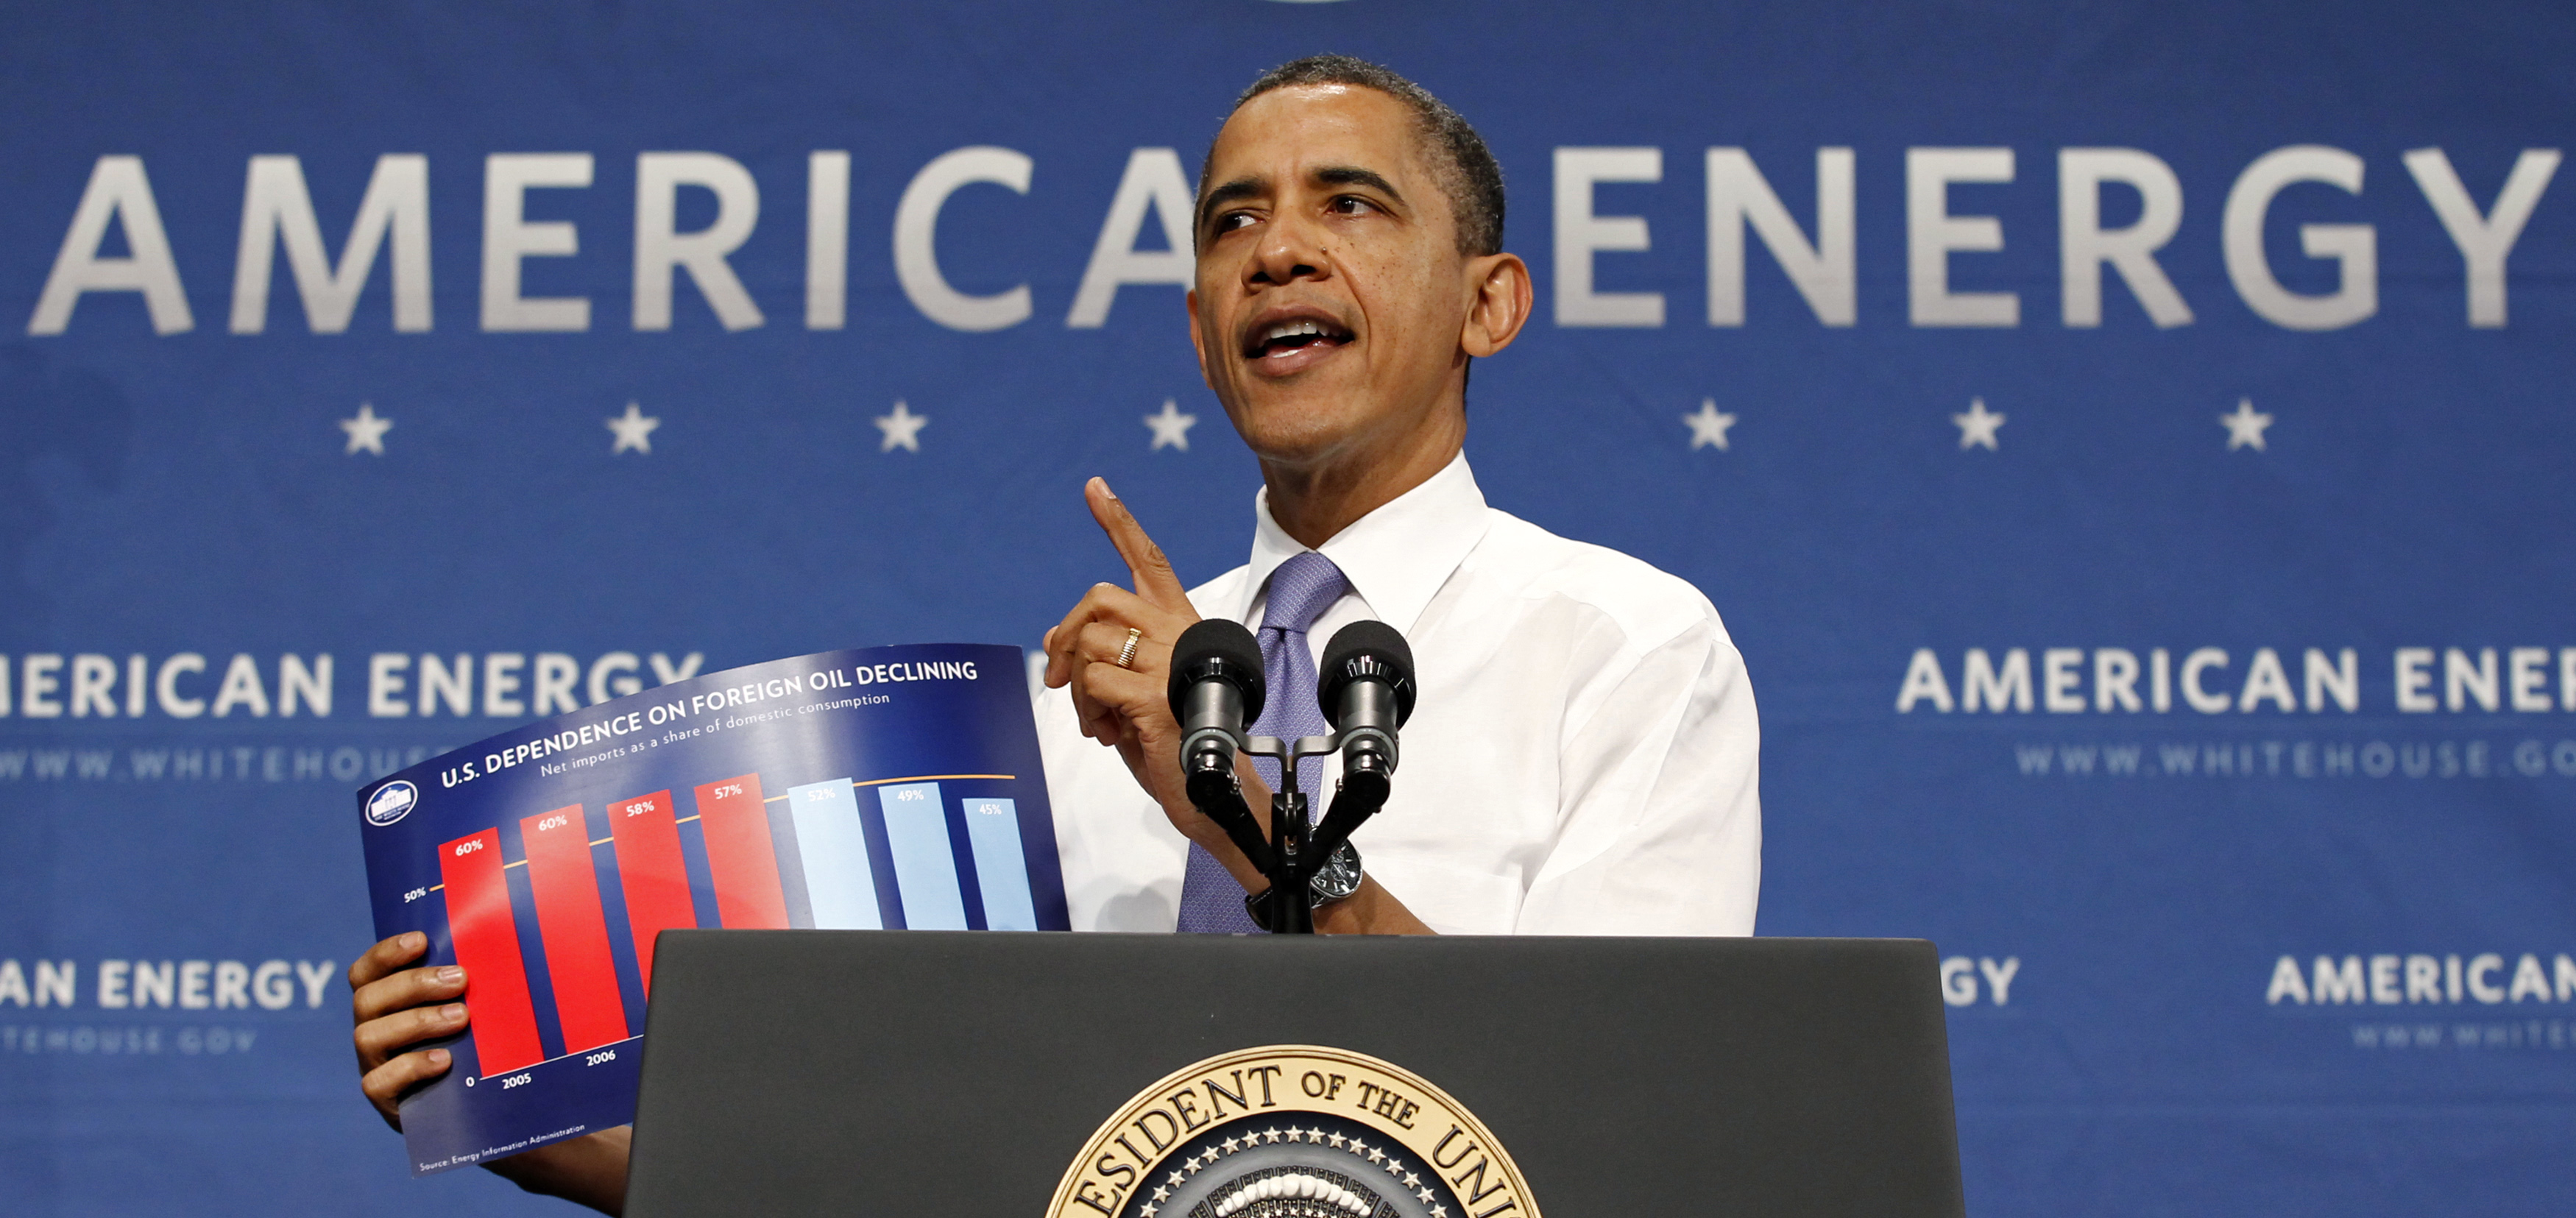 U.S. President Barack Obama holds a chart showing declining U.S. dependence on foreign oil as he speaks about energy during a visit to Nashua Community College in Nashua